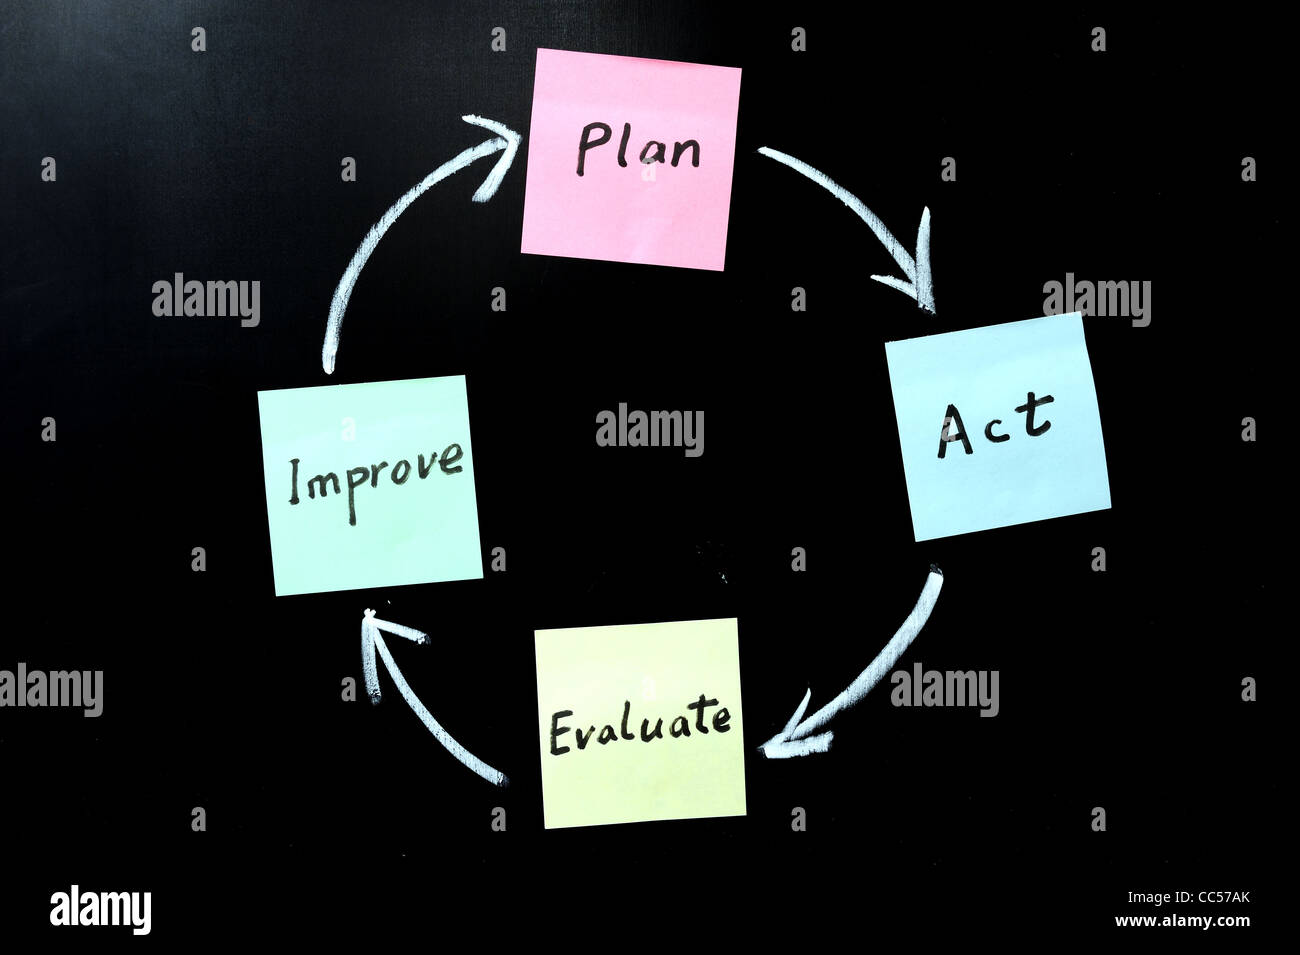 Plan, act, evaluate and improve - Stock Image